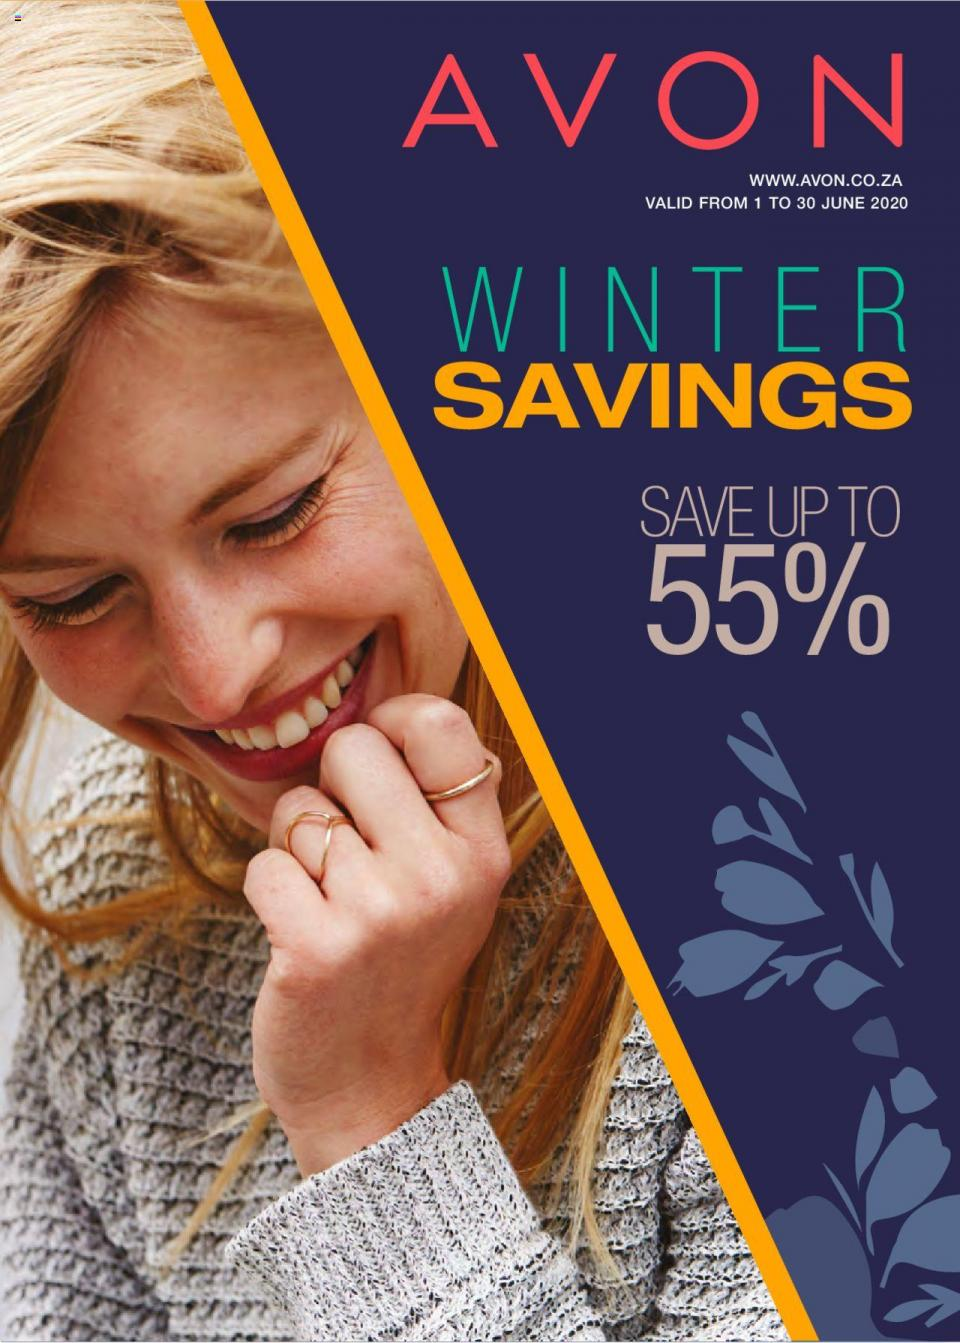 avon brochure winter savings 1 june 2020